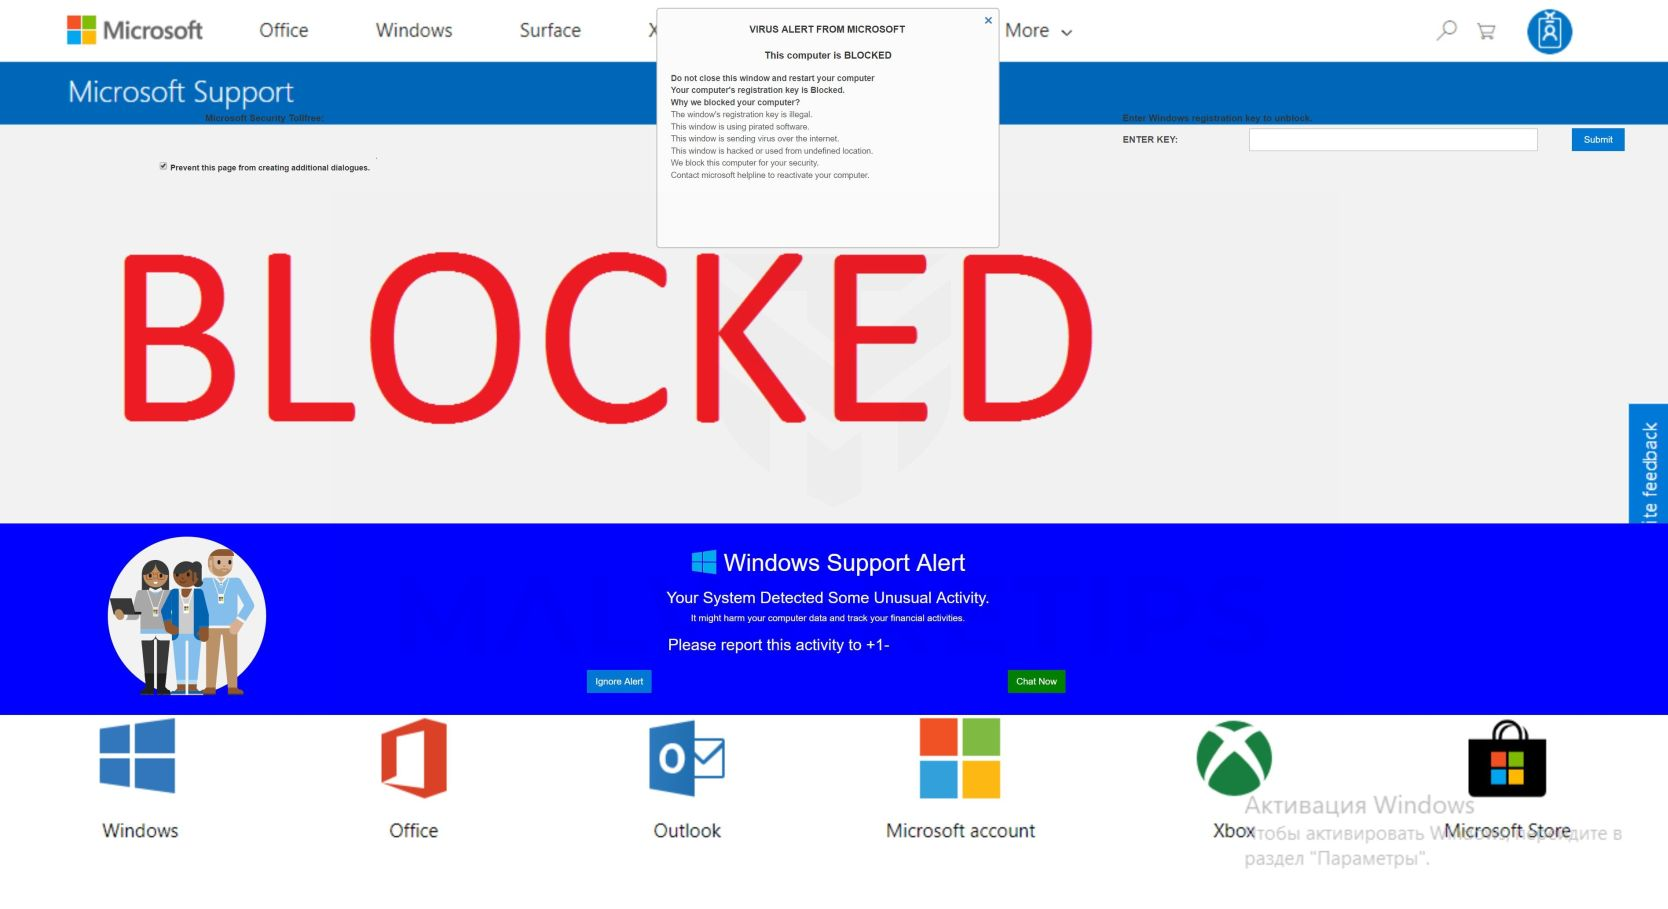 license key for windows scam